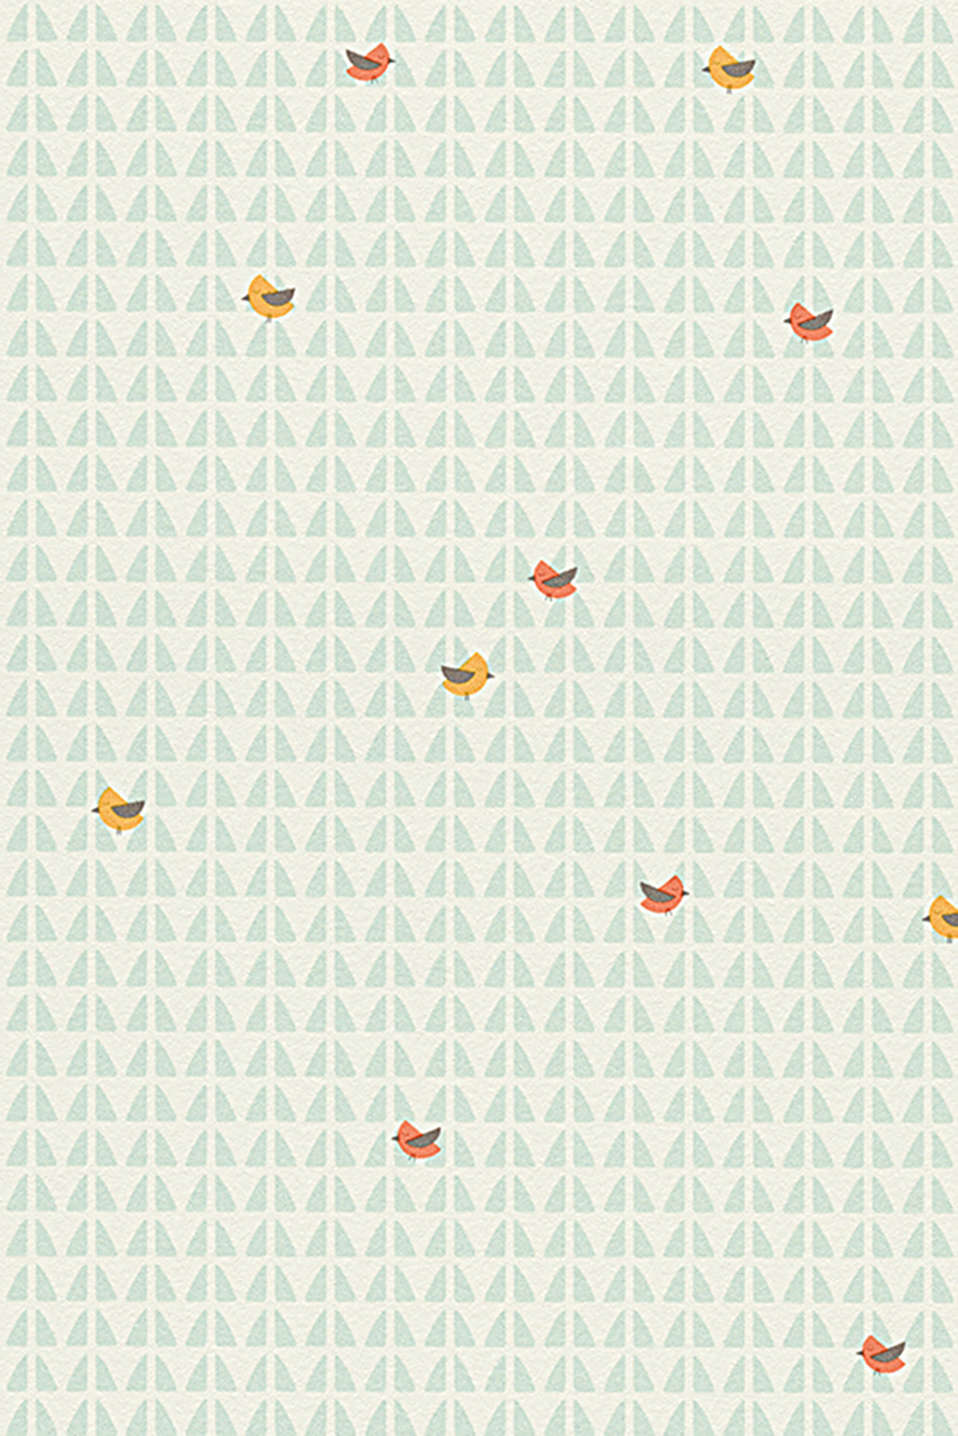 Esprit - Kindertapete High Sky Birds Patterned